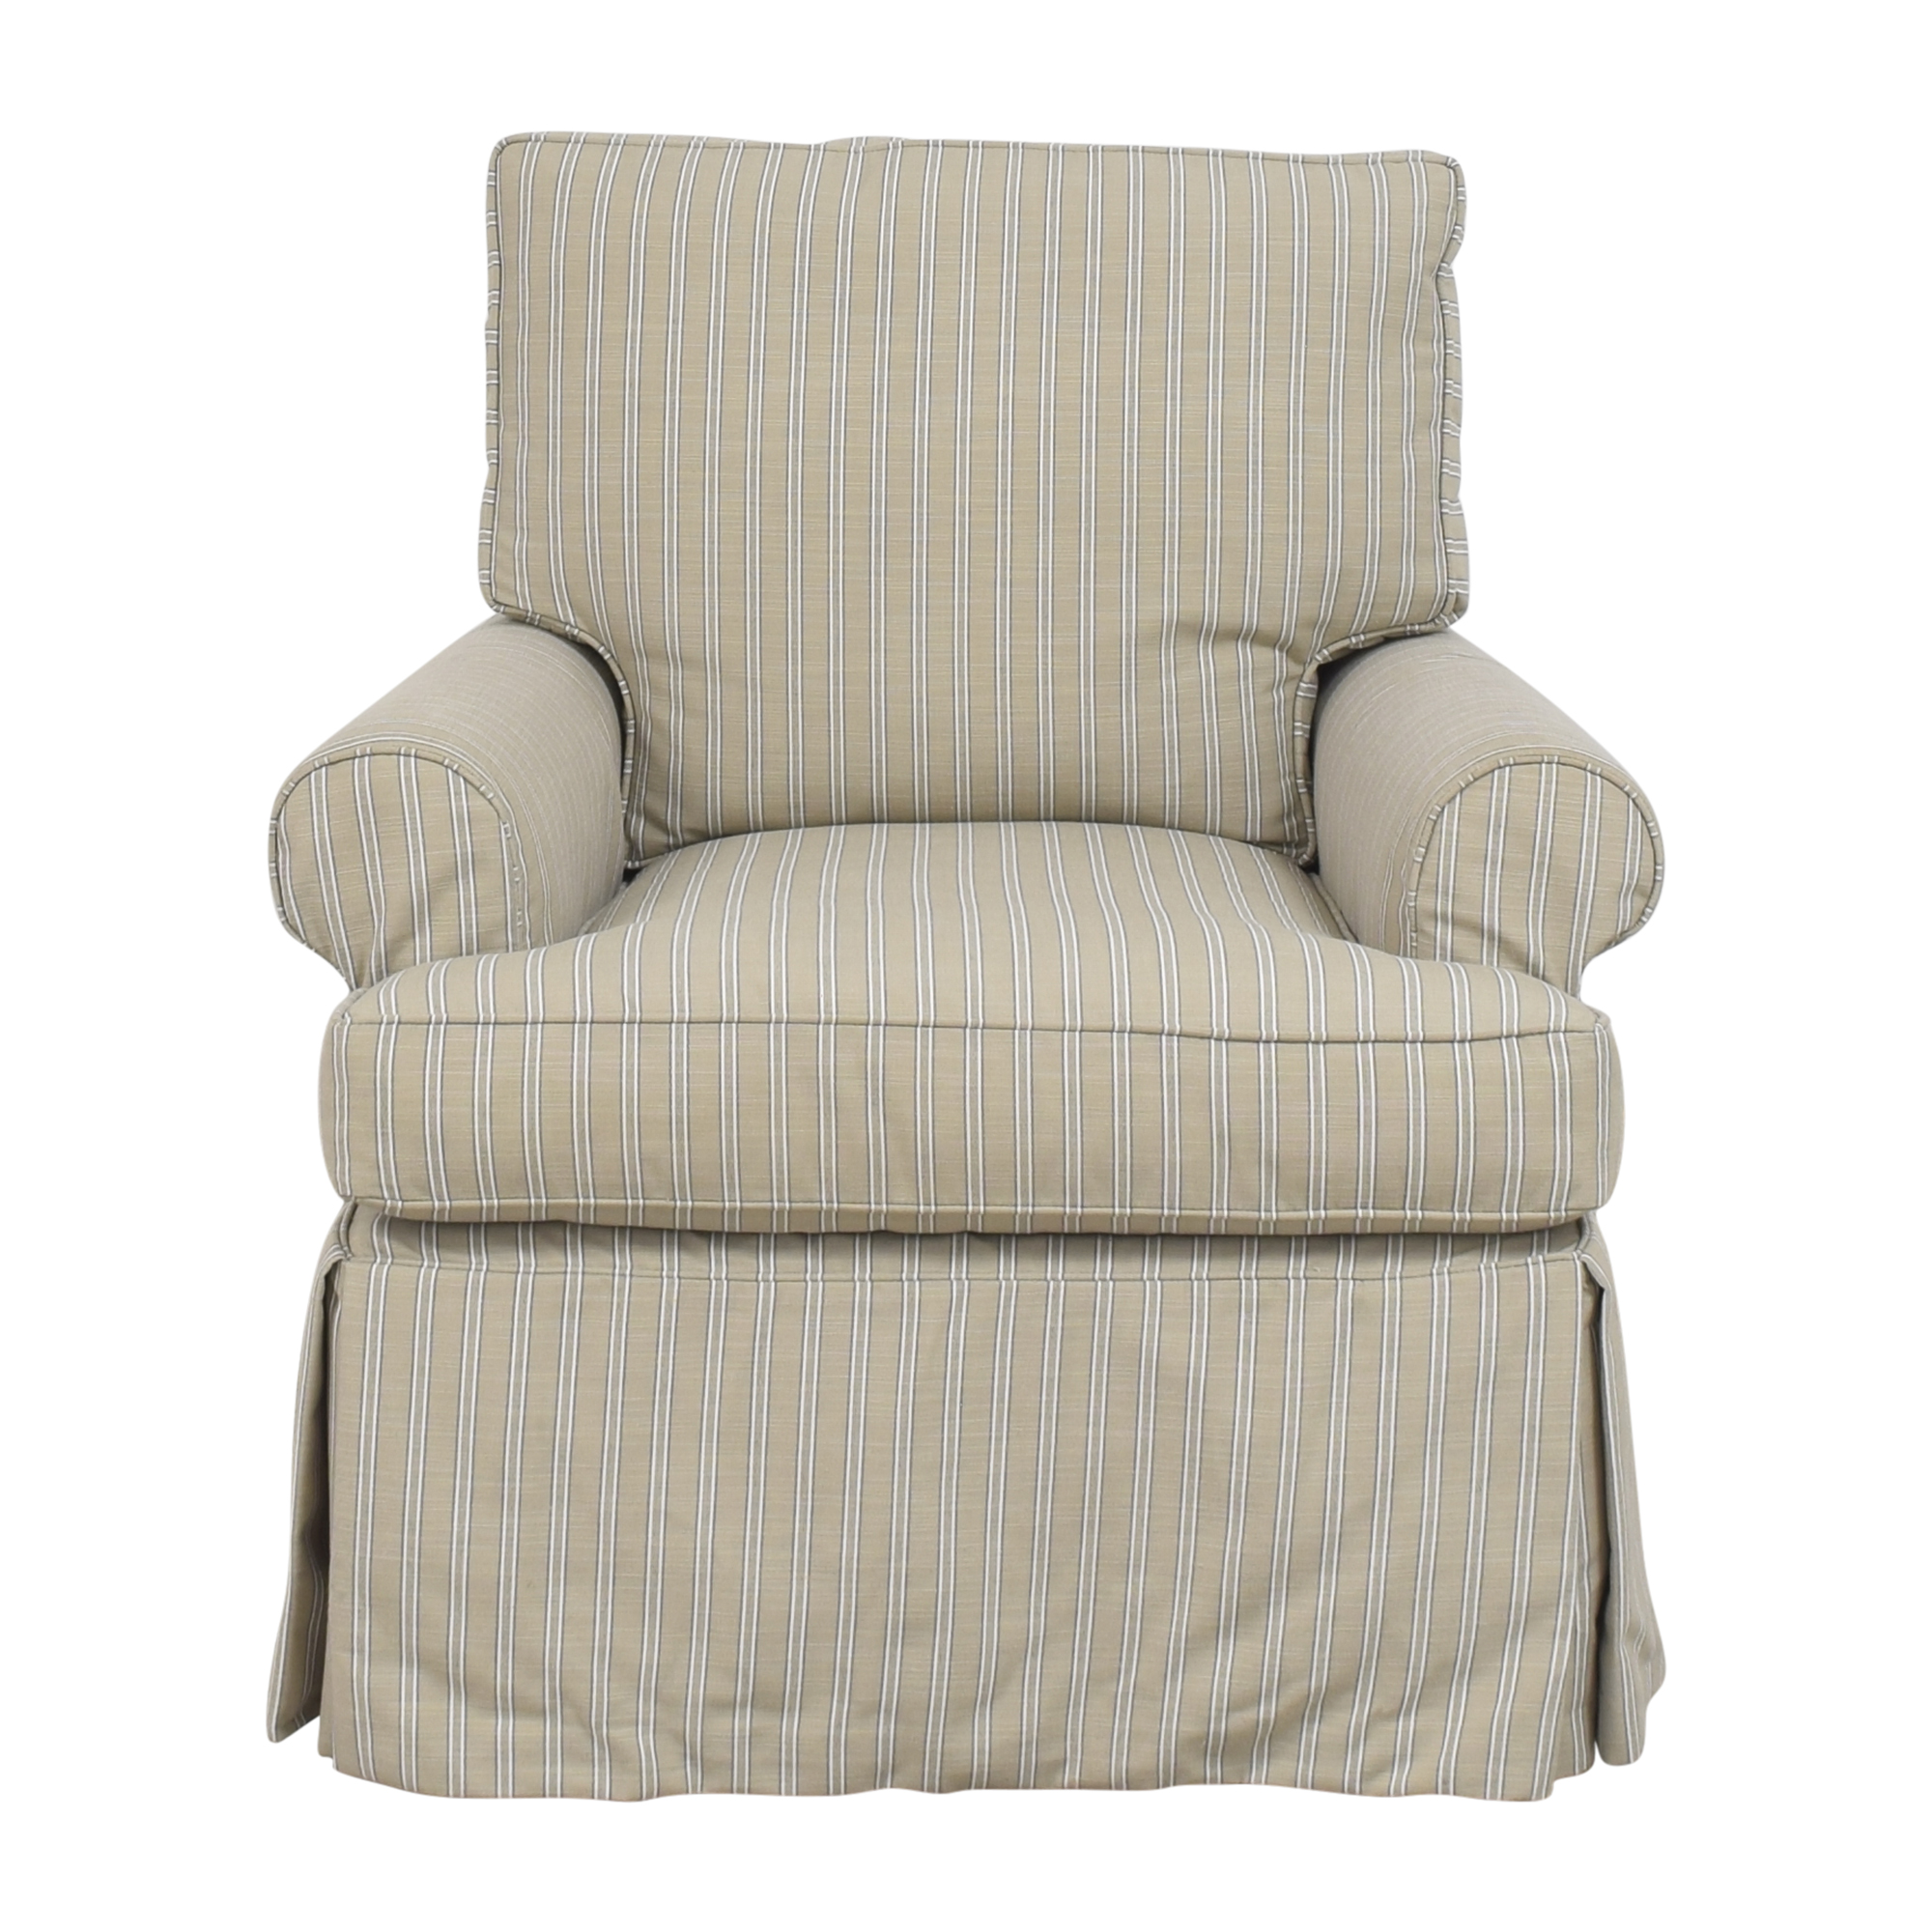 buy Restoration Hardware Skirted Glider  Restoration Hardware Chairs